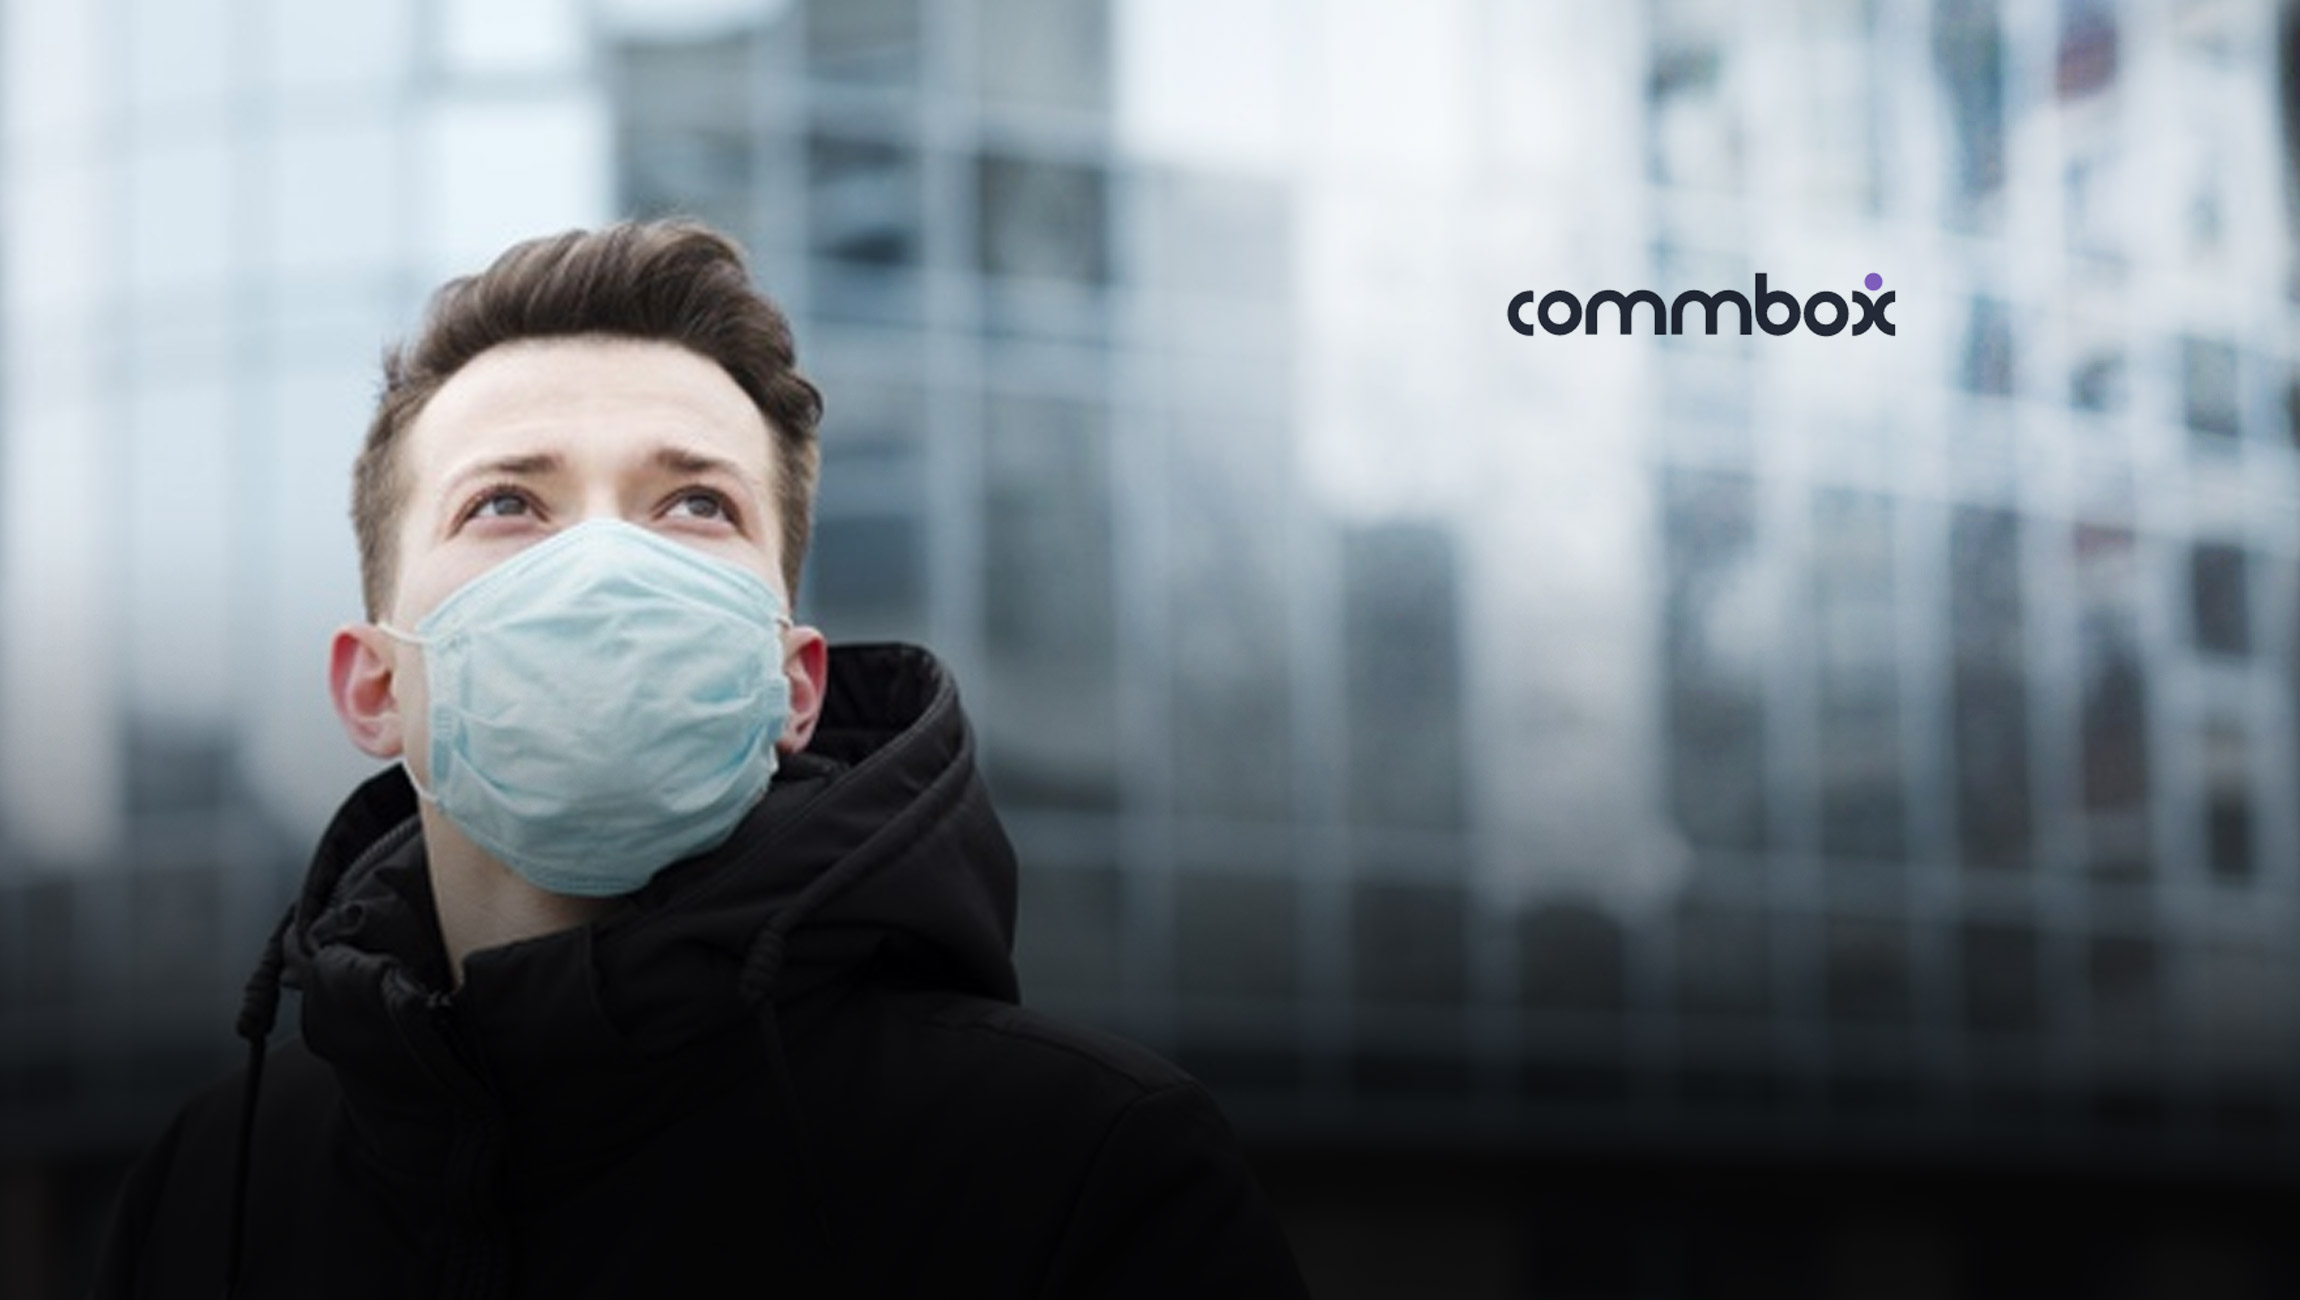 CommBox_-The-Leading-AI-Customer-Communication-Platform-Land-A-4.4M_-Deal-Size-To-Empower-The-Most-Efficient-Healthcare-Service---Clalit_-Regarding-COVID-19-Vaccinations